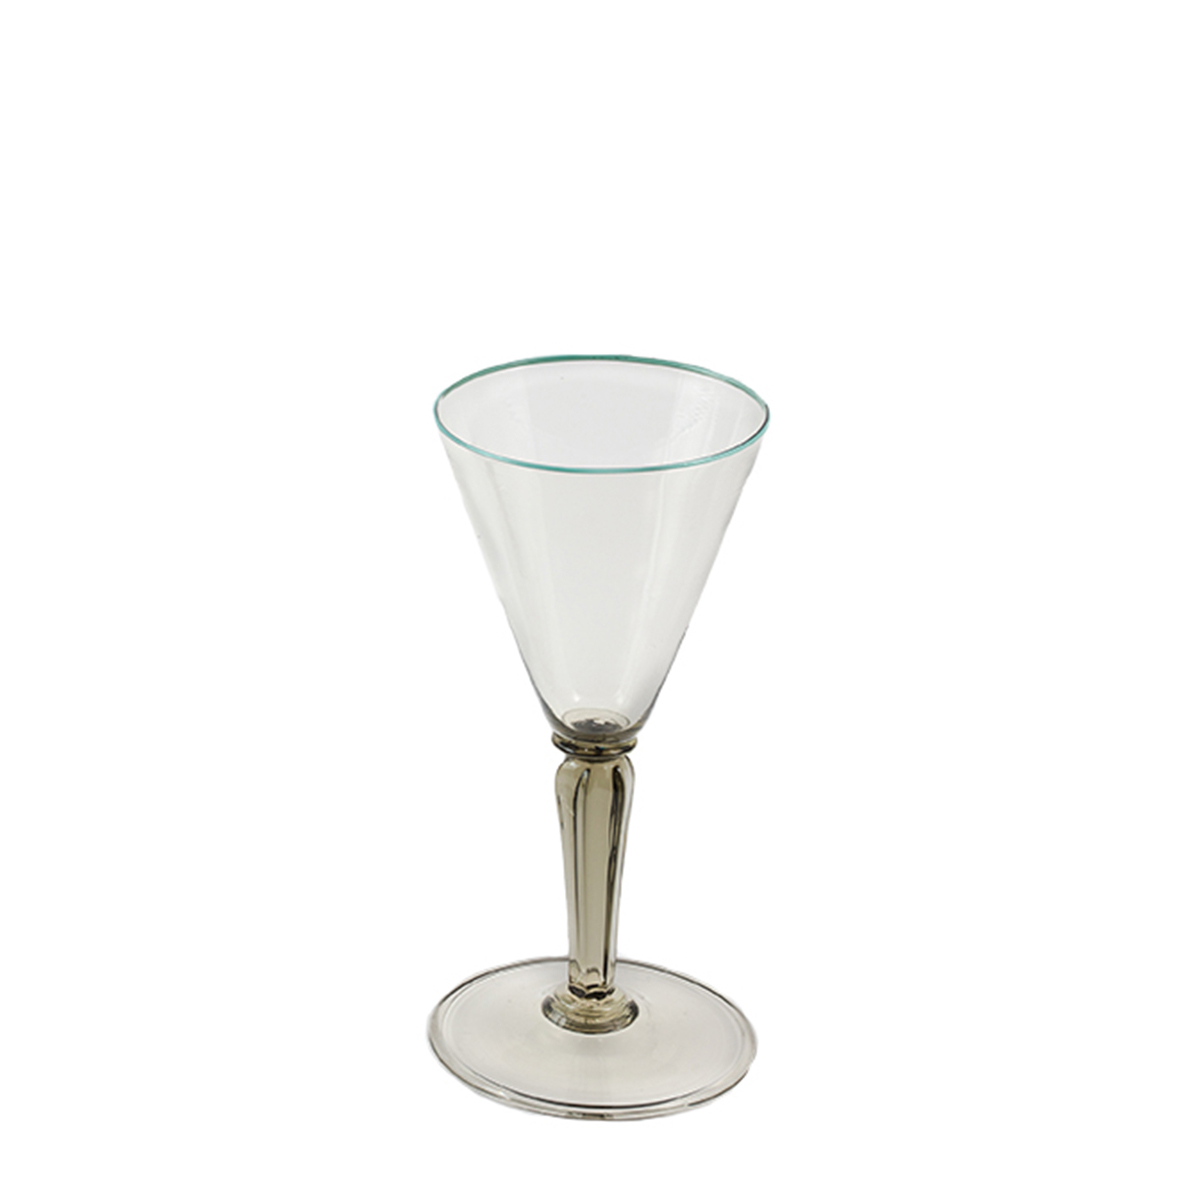 tulipano_glass_murano_handmade_venice_giberto_cocktail_wine_blue_rim_luxury